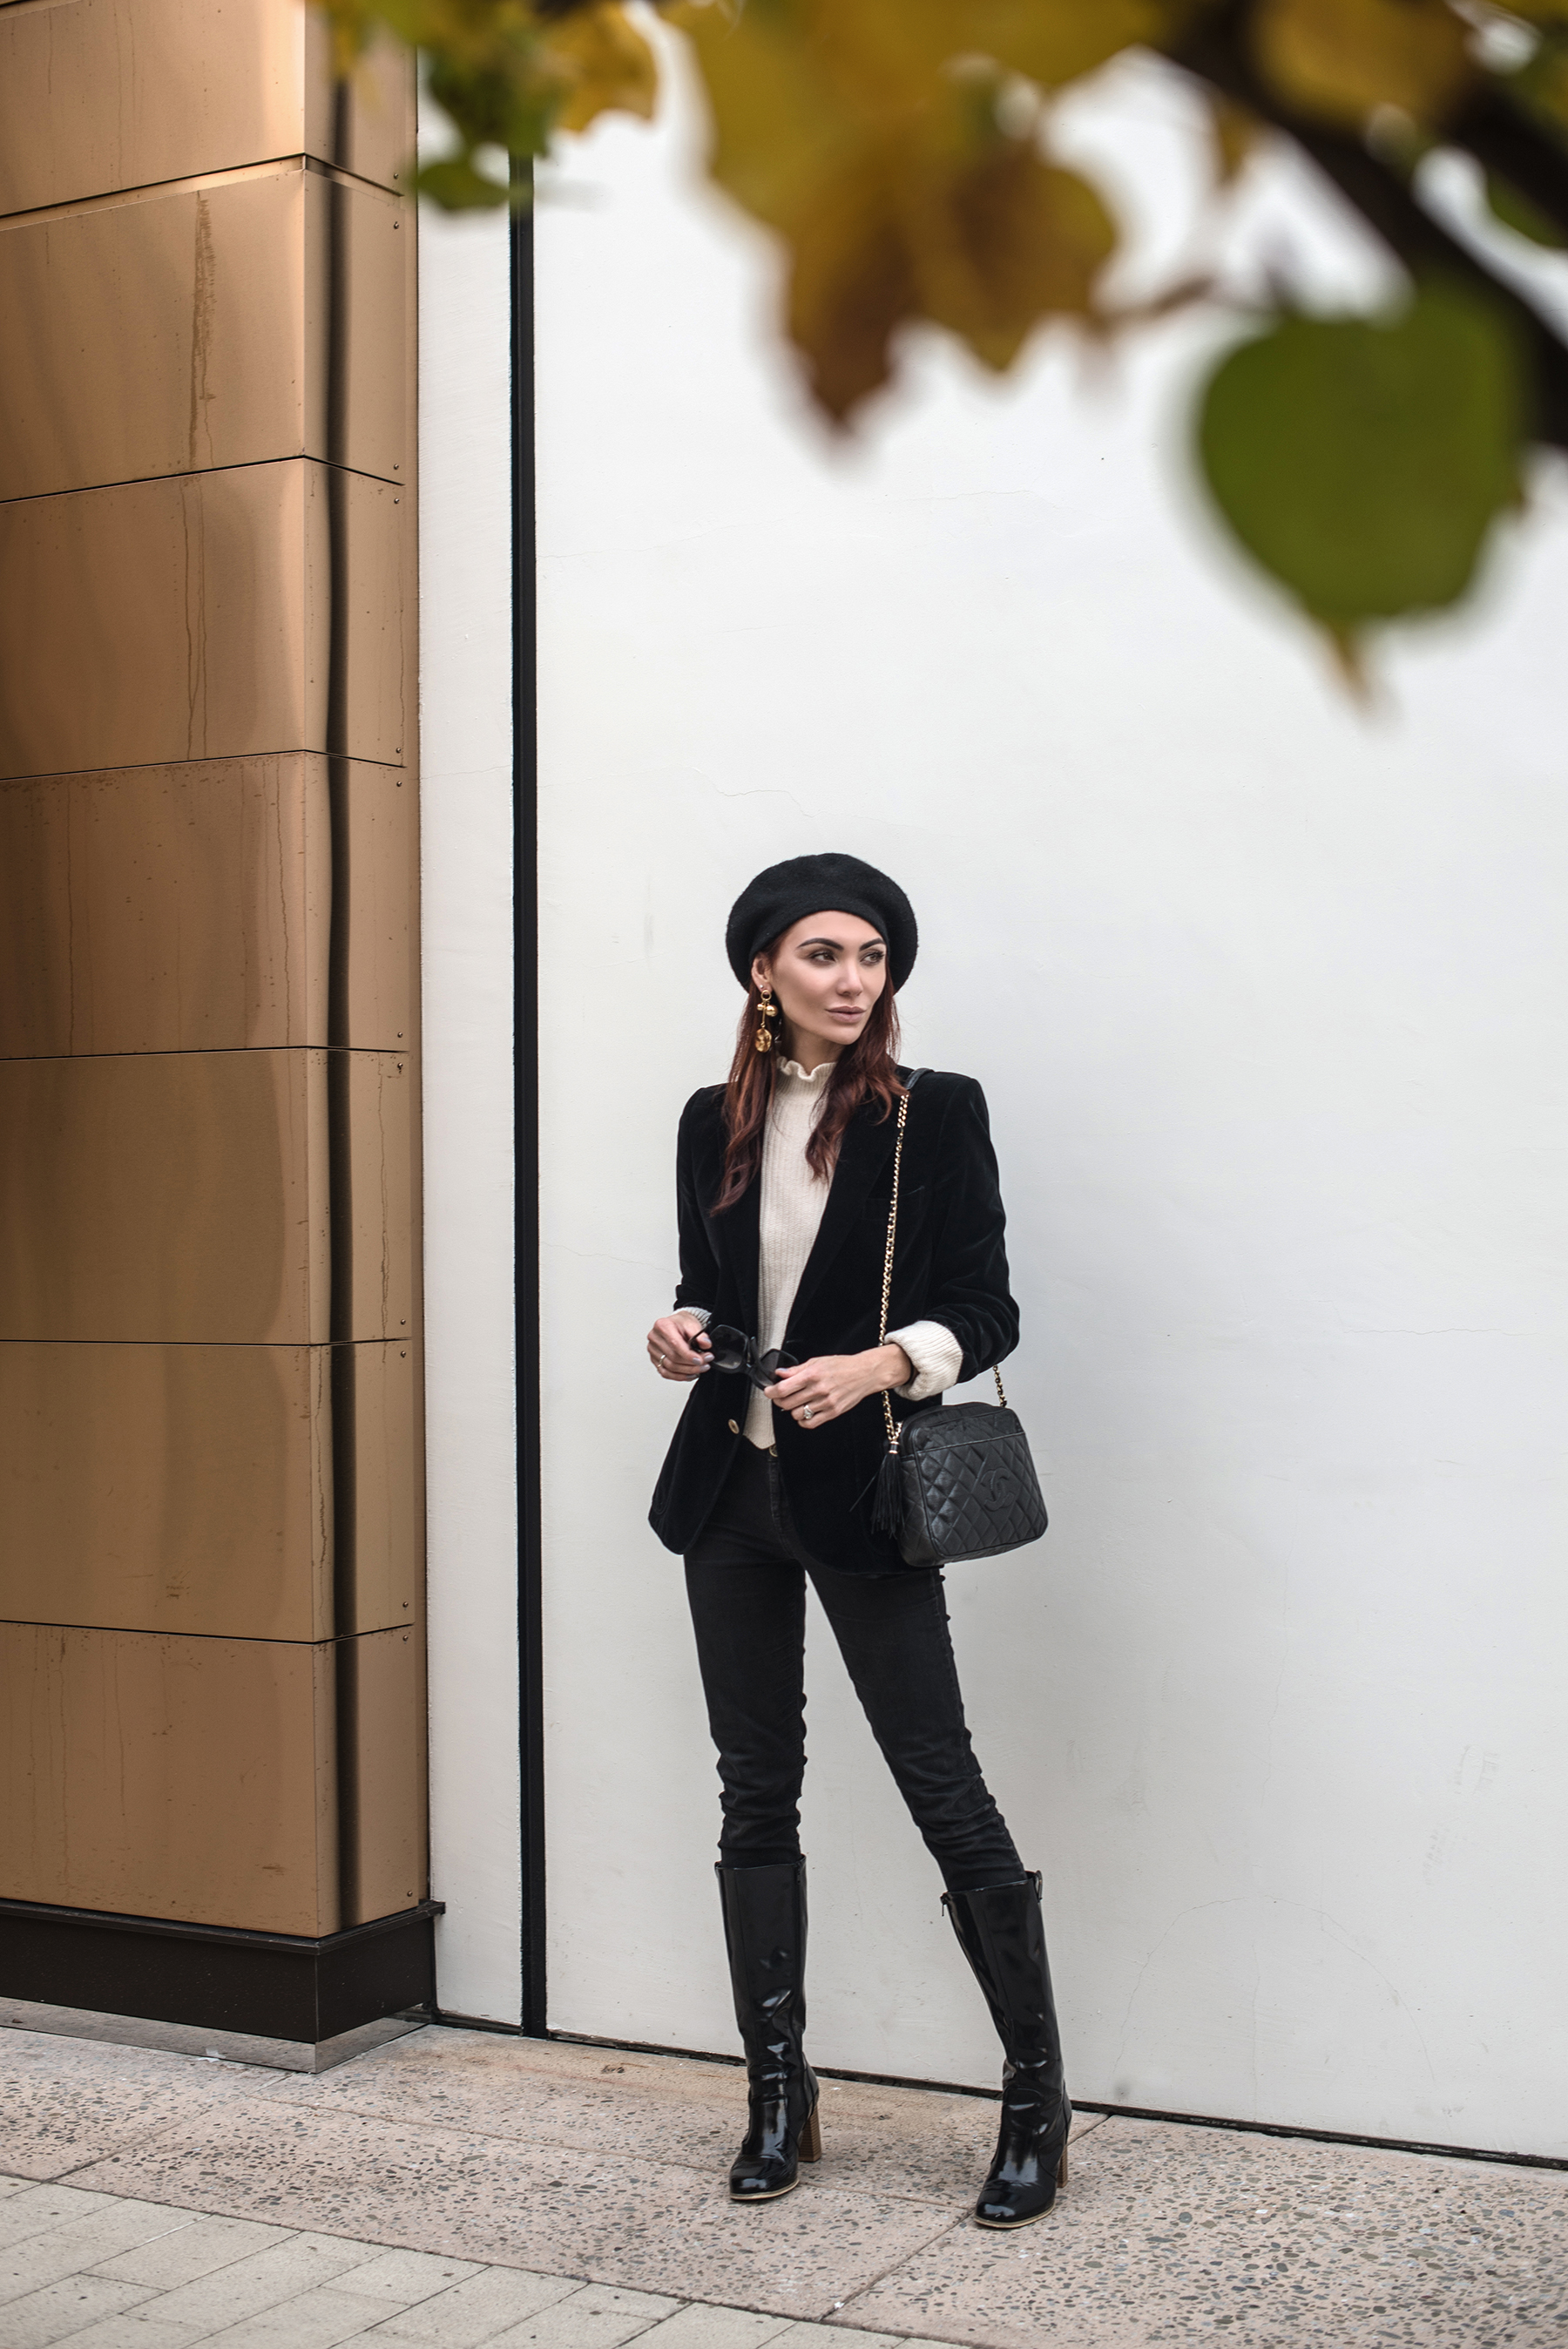 /   HAT   /   EARRINGS   /   SWEATER   / JACKET (vintage, similar   HERE     and     HERE  ) / JEANS (old, similar   HERE  ) / BOOTS (old, similar   HERE     and     HERE  ) /   PURSE   /